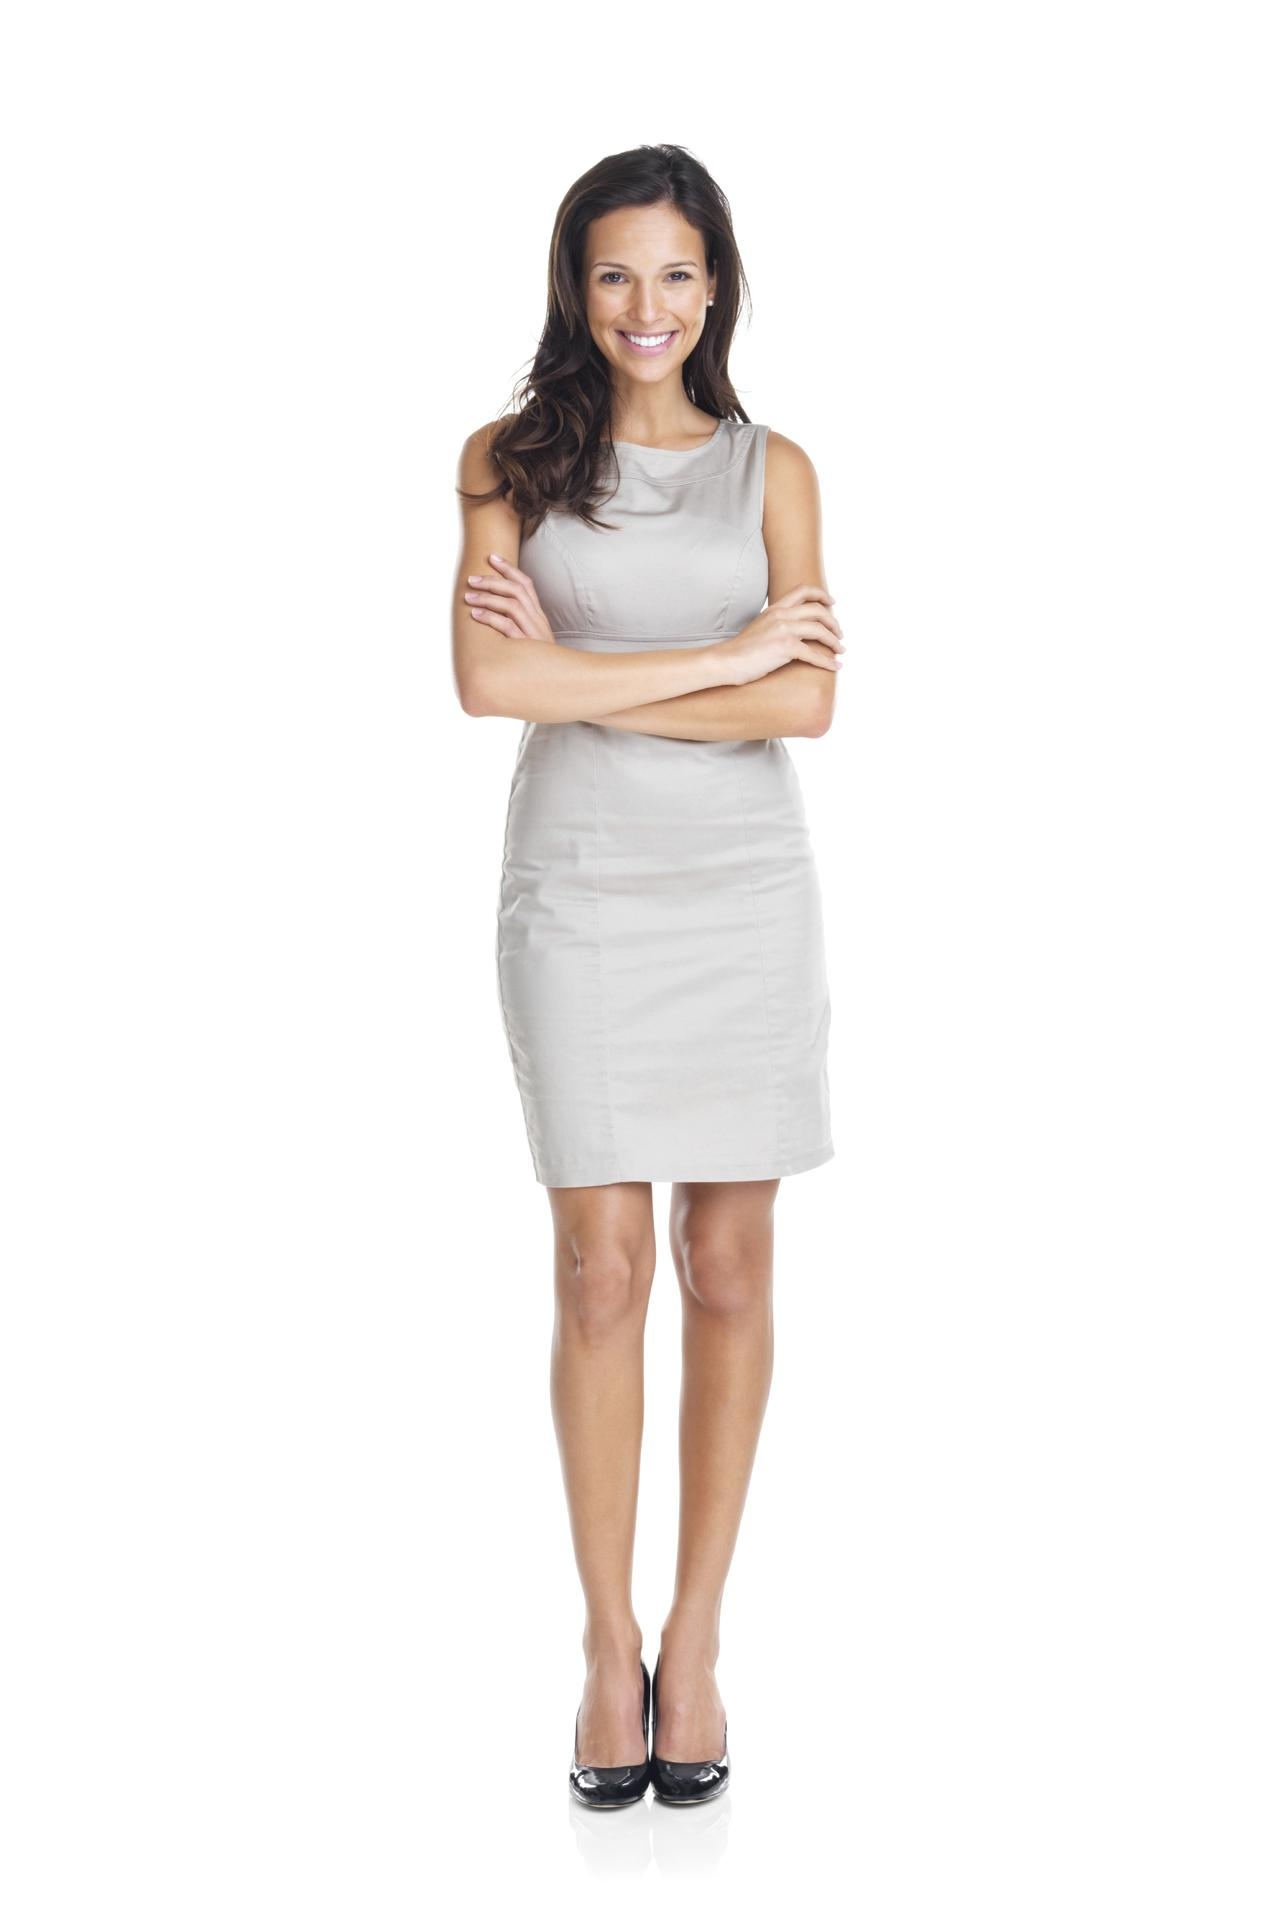 Semi Formal What Is A Semi Formal Dress Code Dresscodeable